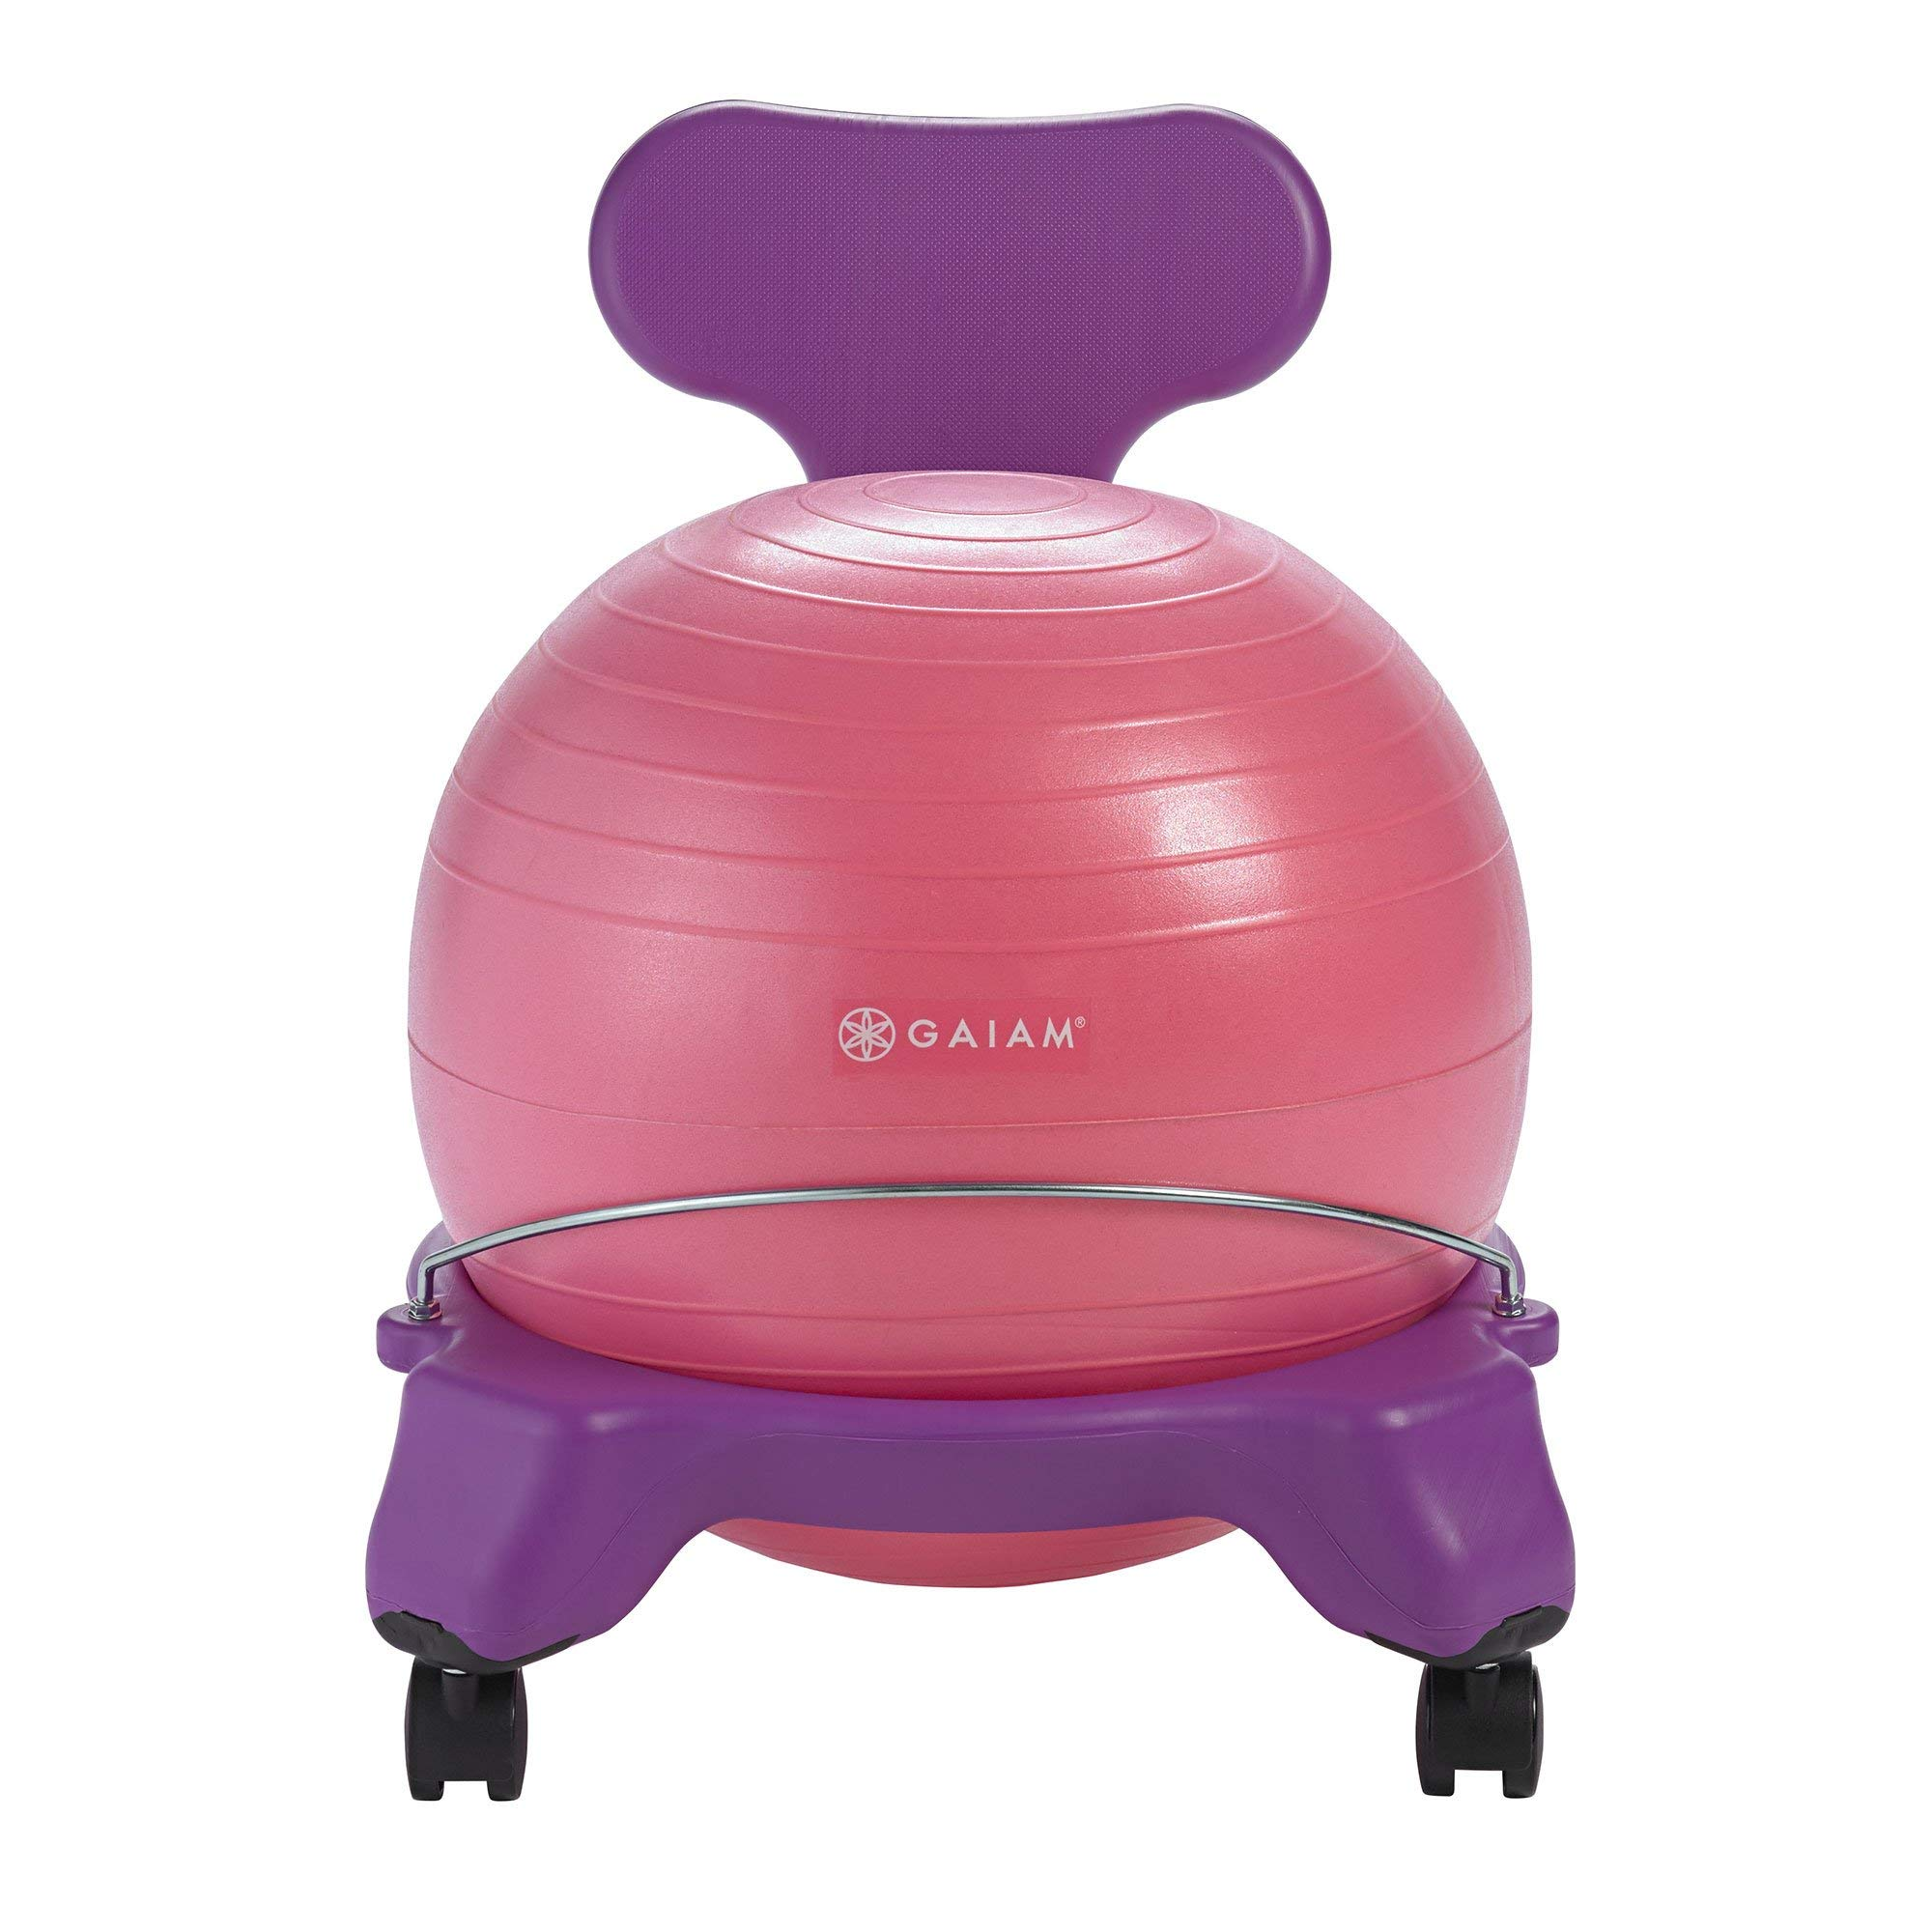 Gaiam Kids Balance Ball Chair - Classic Children's Stability Ball Chair, Alternative School Classroom Flexible Desk Seating for Active Students with Satisfaction Guarantee, Purple/Pink (Renewed)